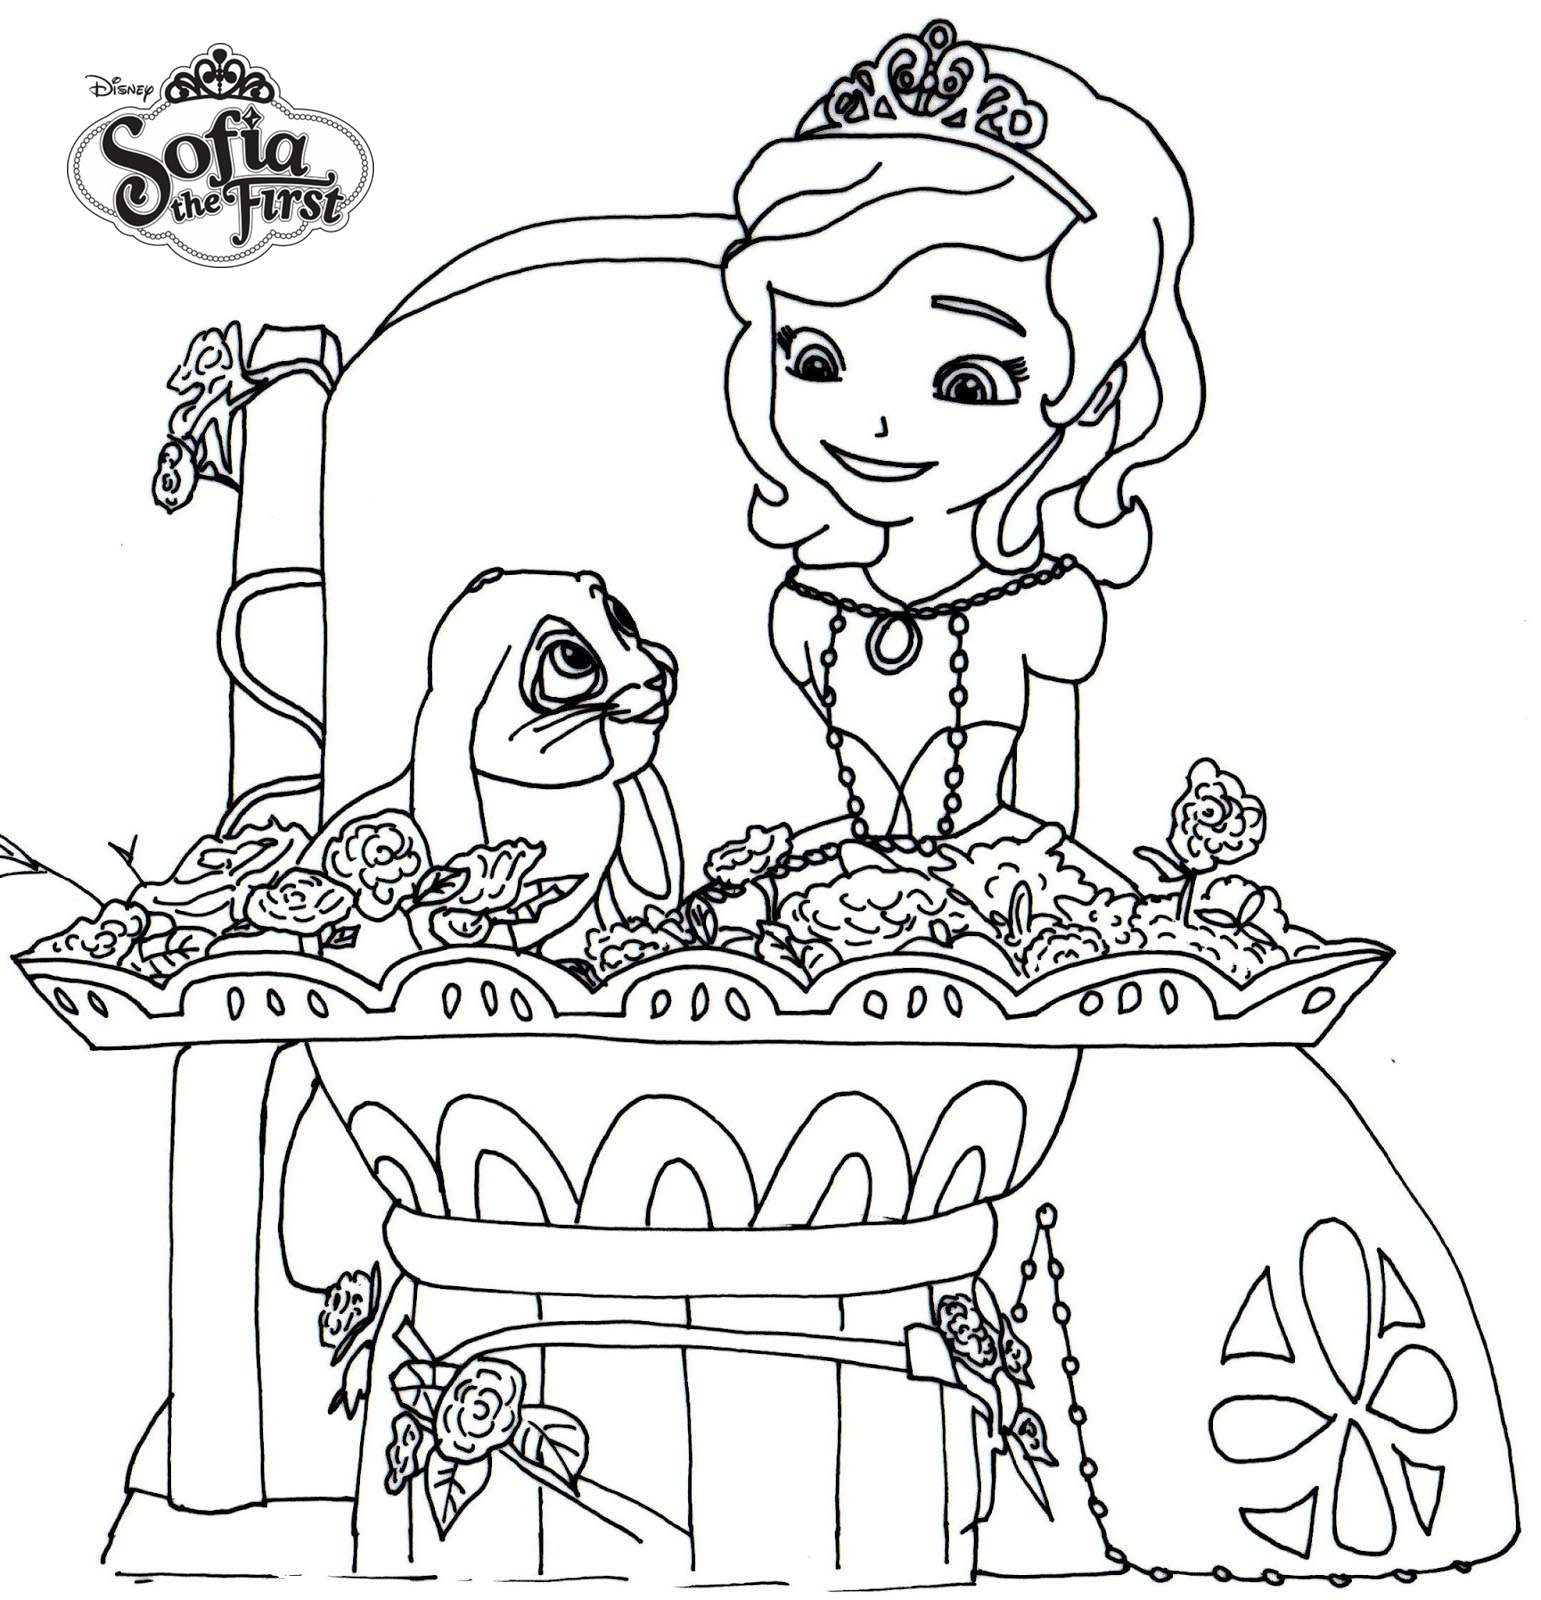 Sofia The First Coloring Pages Clover and Soifa - Free Printable ...